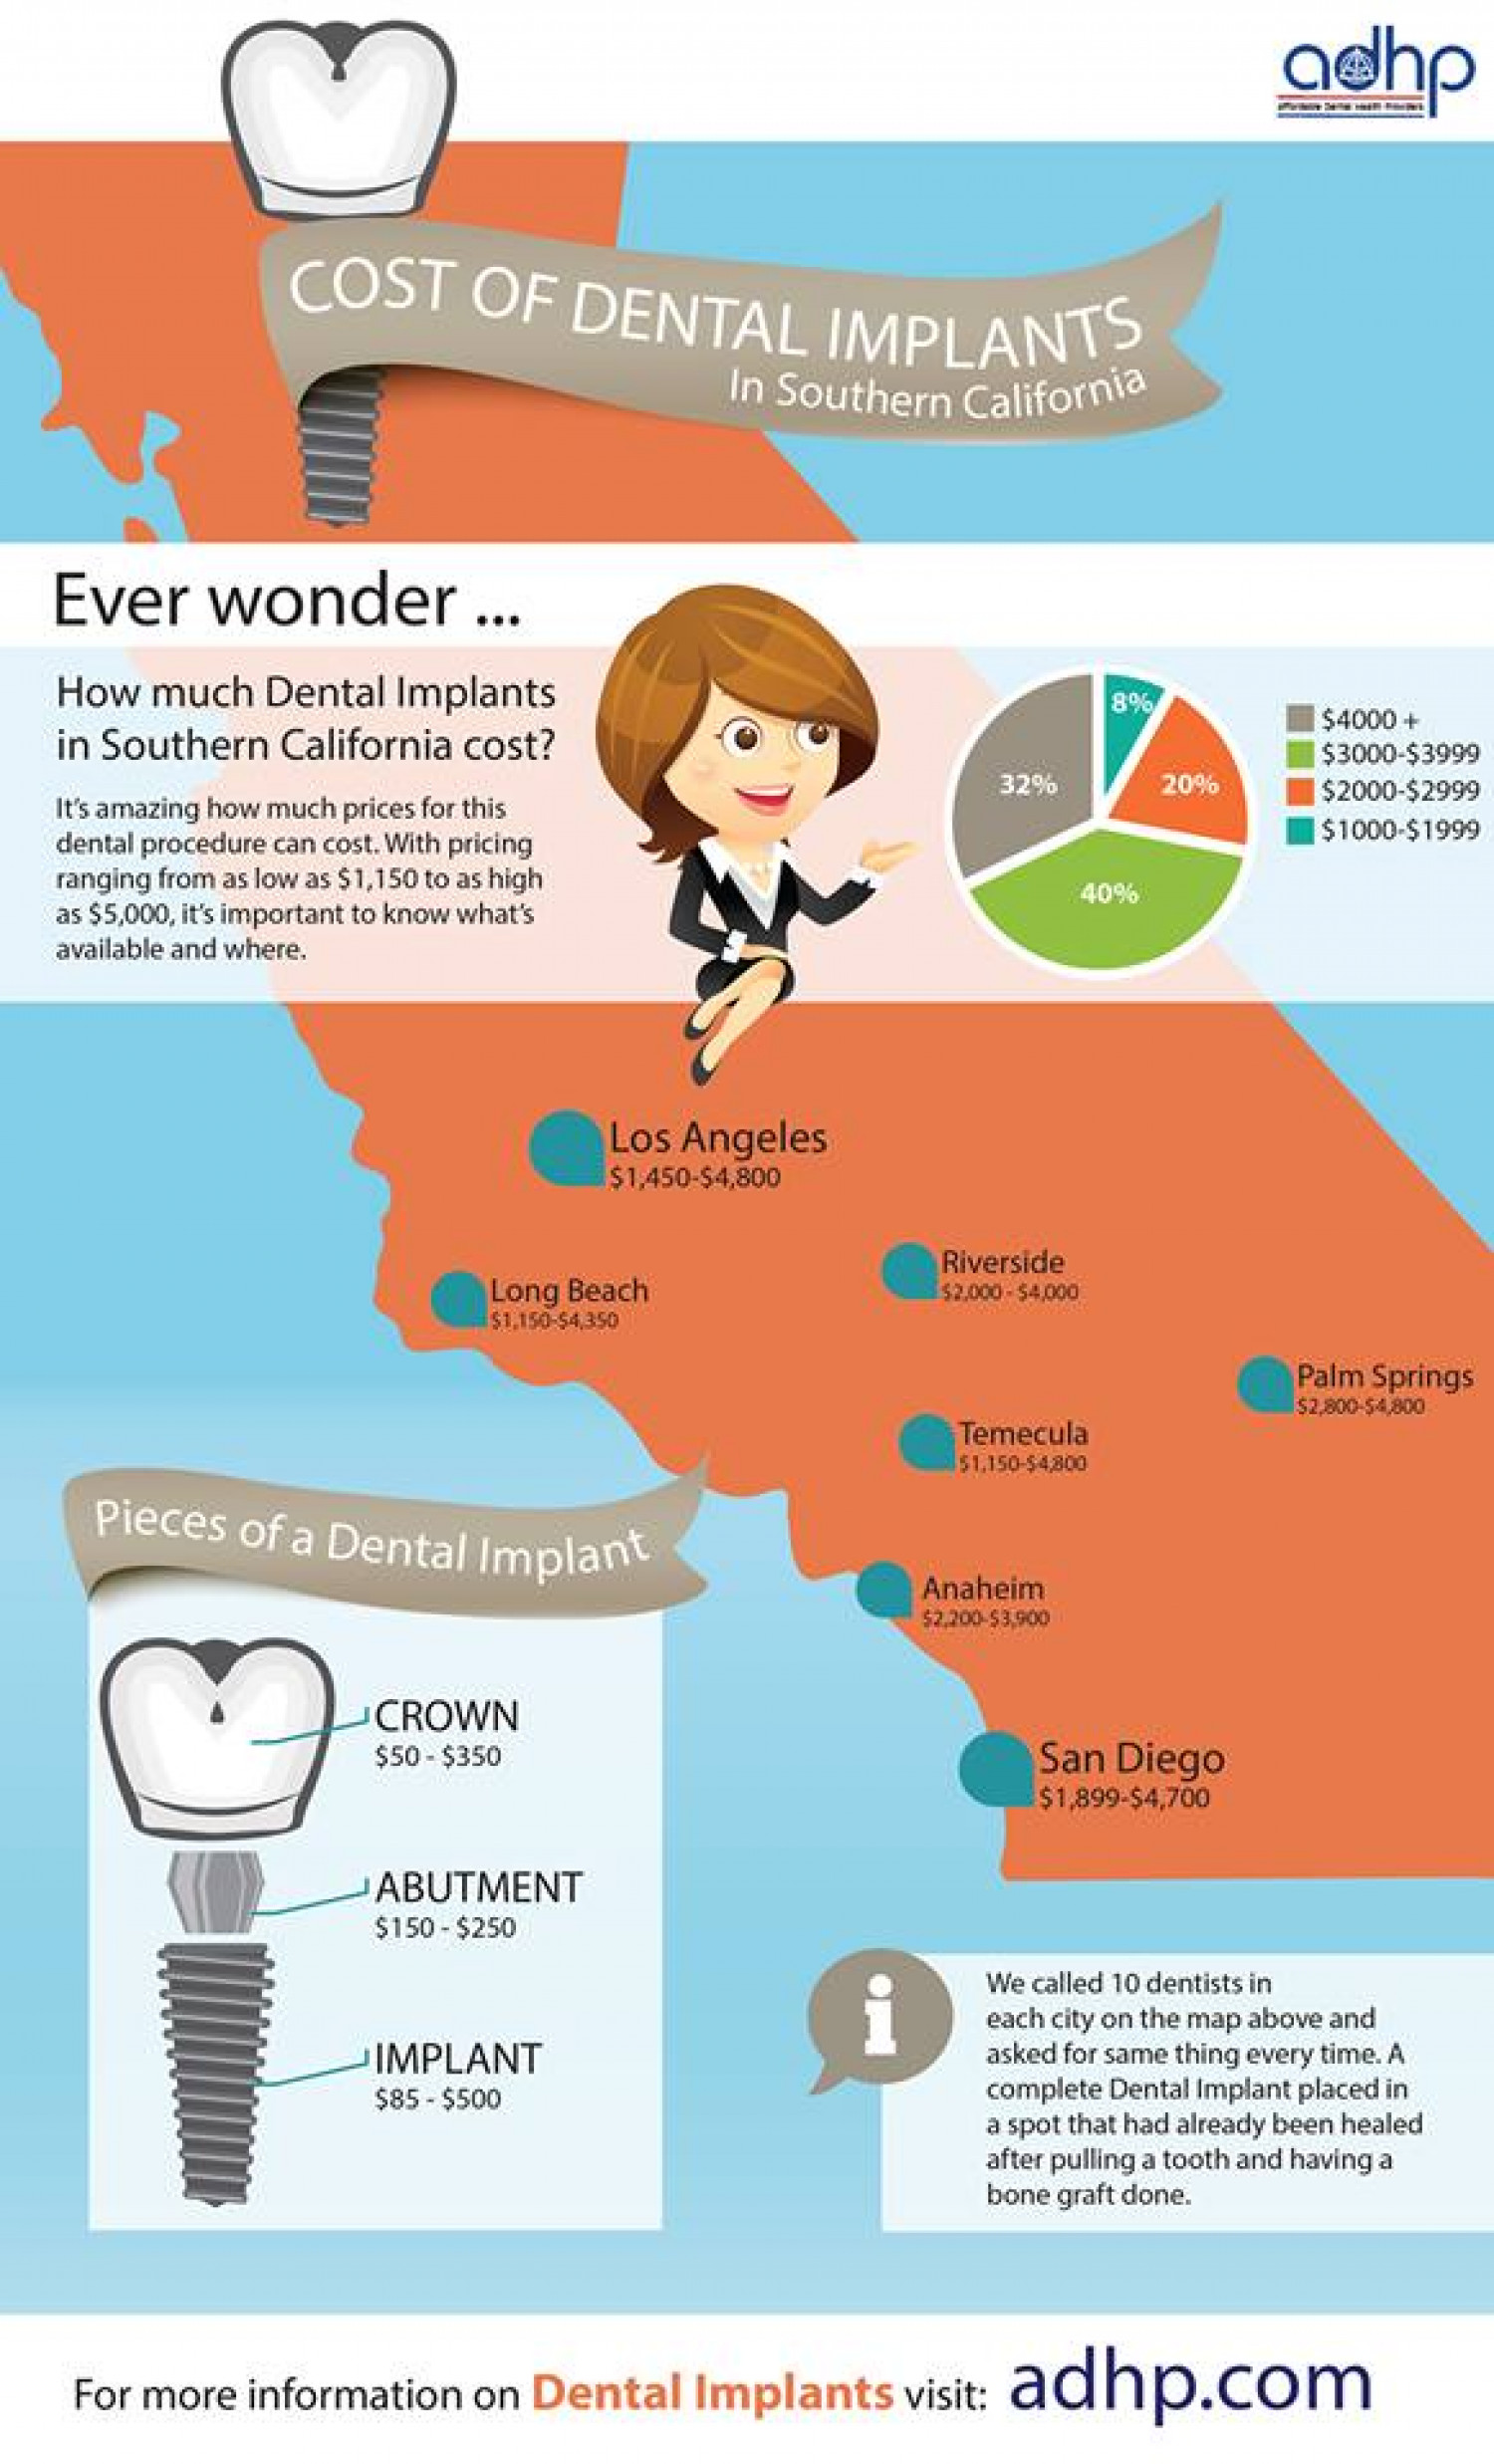 Cost of Dental Implants in Southern California Infographic